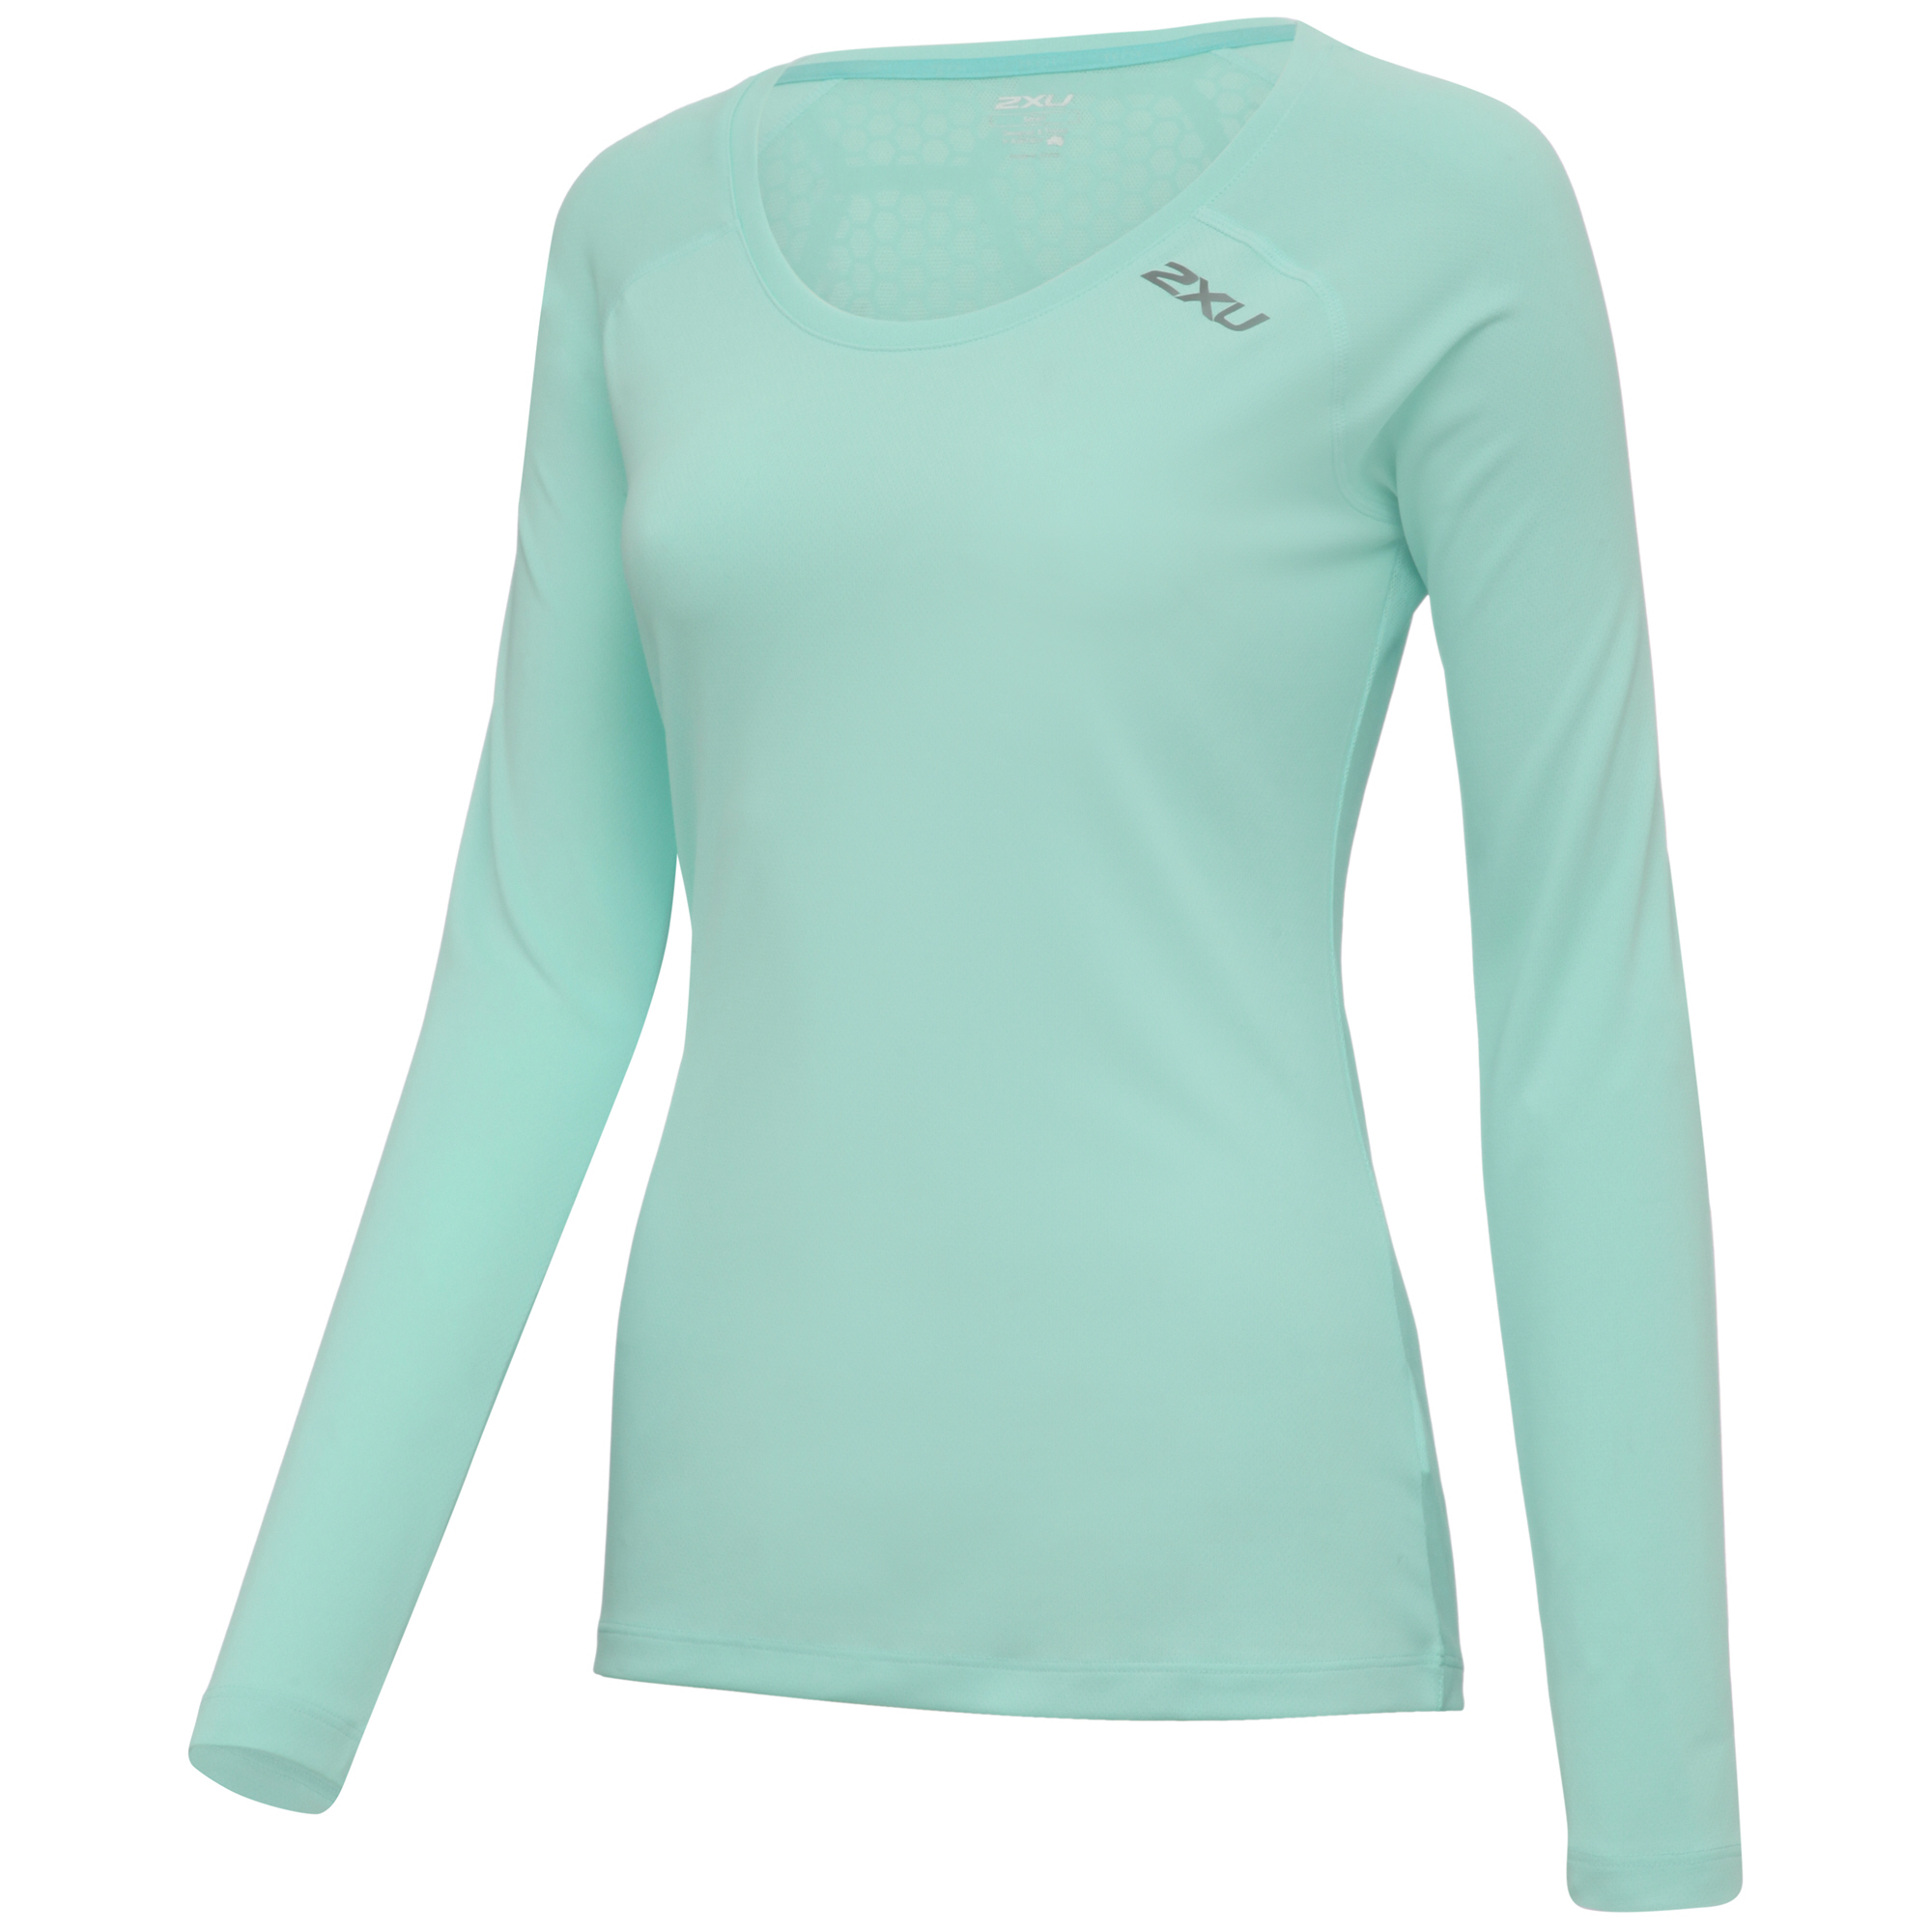 2XU Women's X-Vent Short Sleeve Top | Jerseys